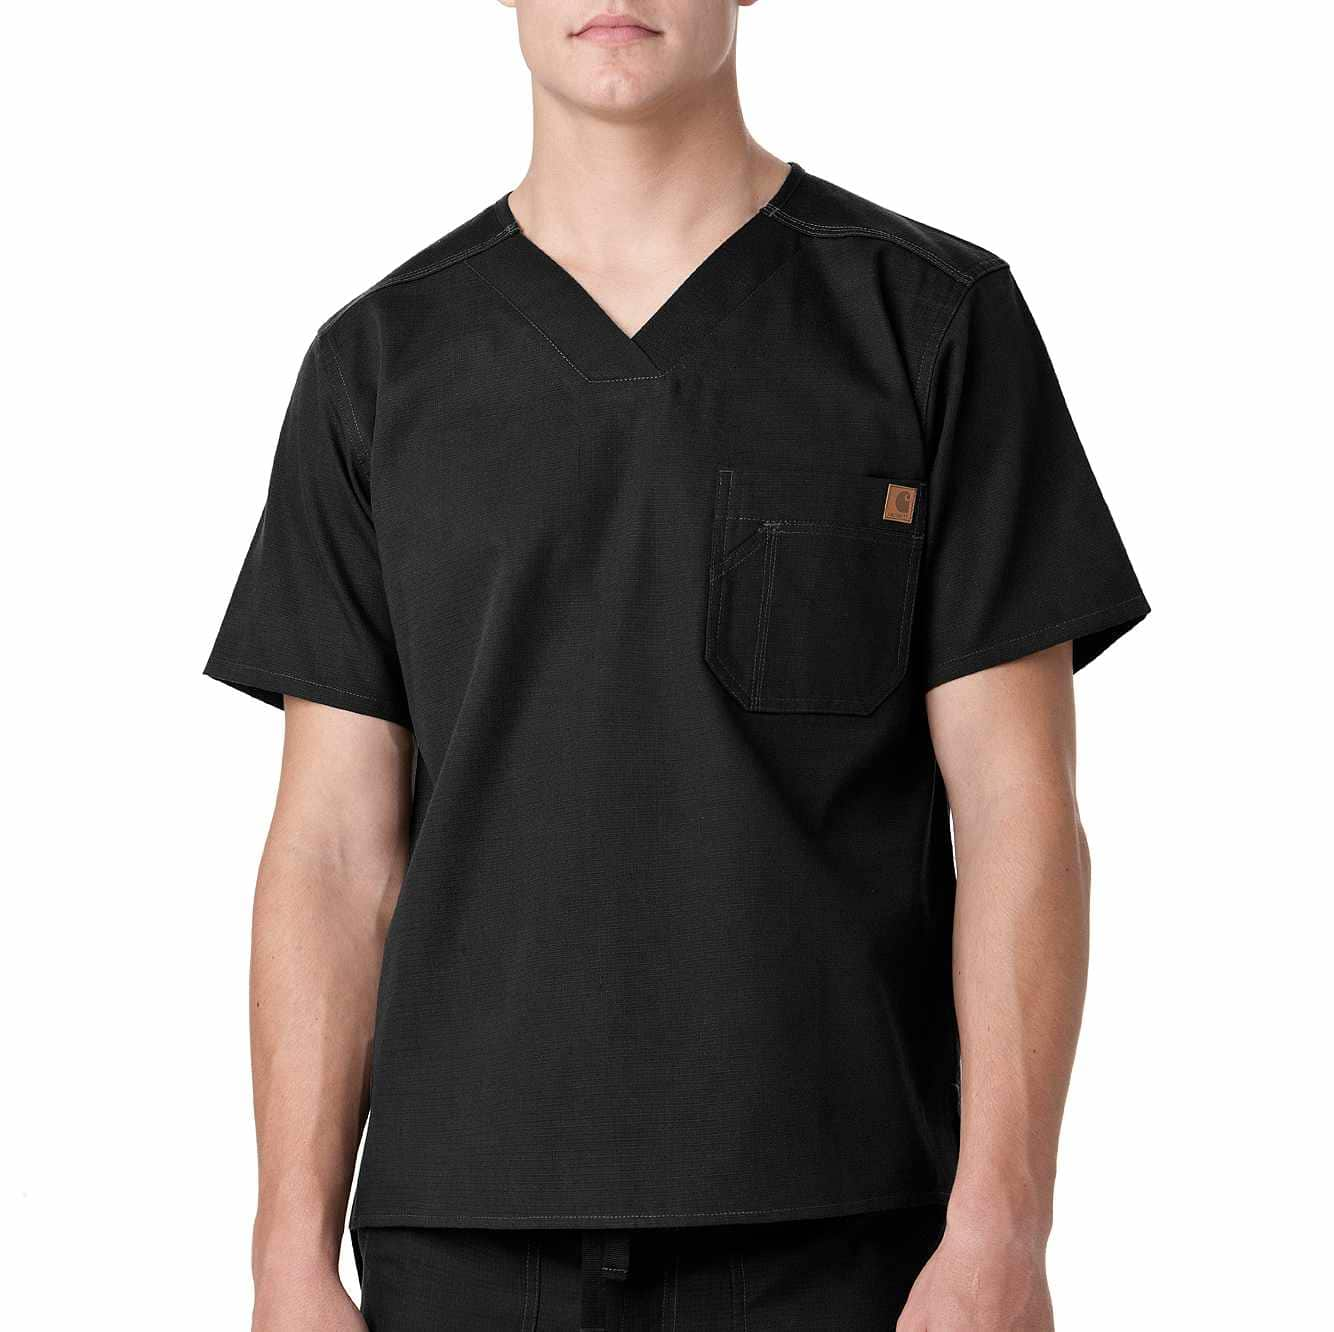 Picture of Solid Ripstop Scrub Utility Top in Black